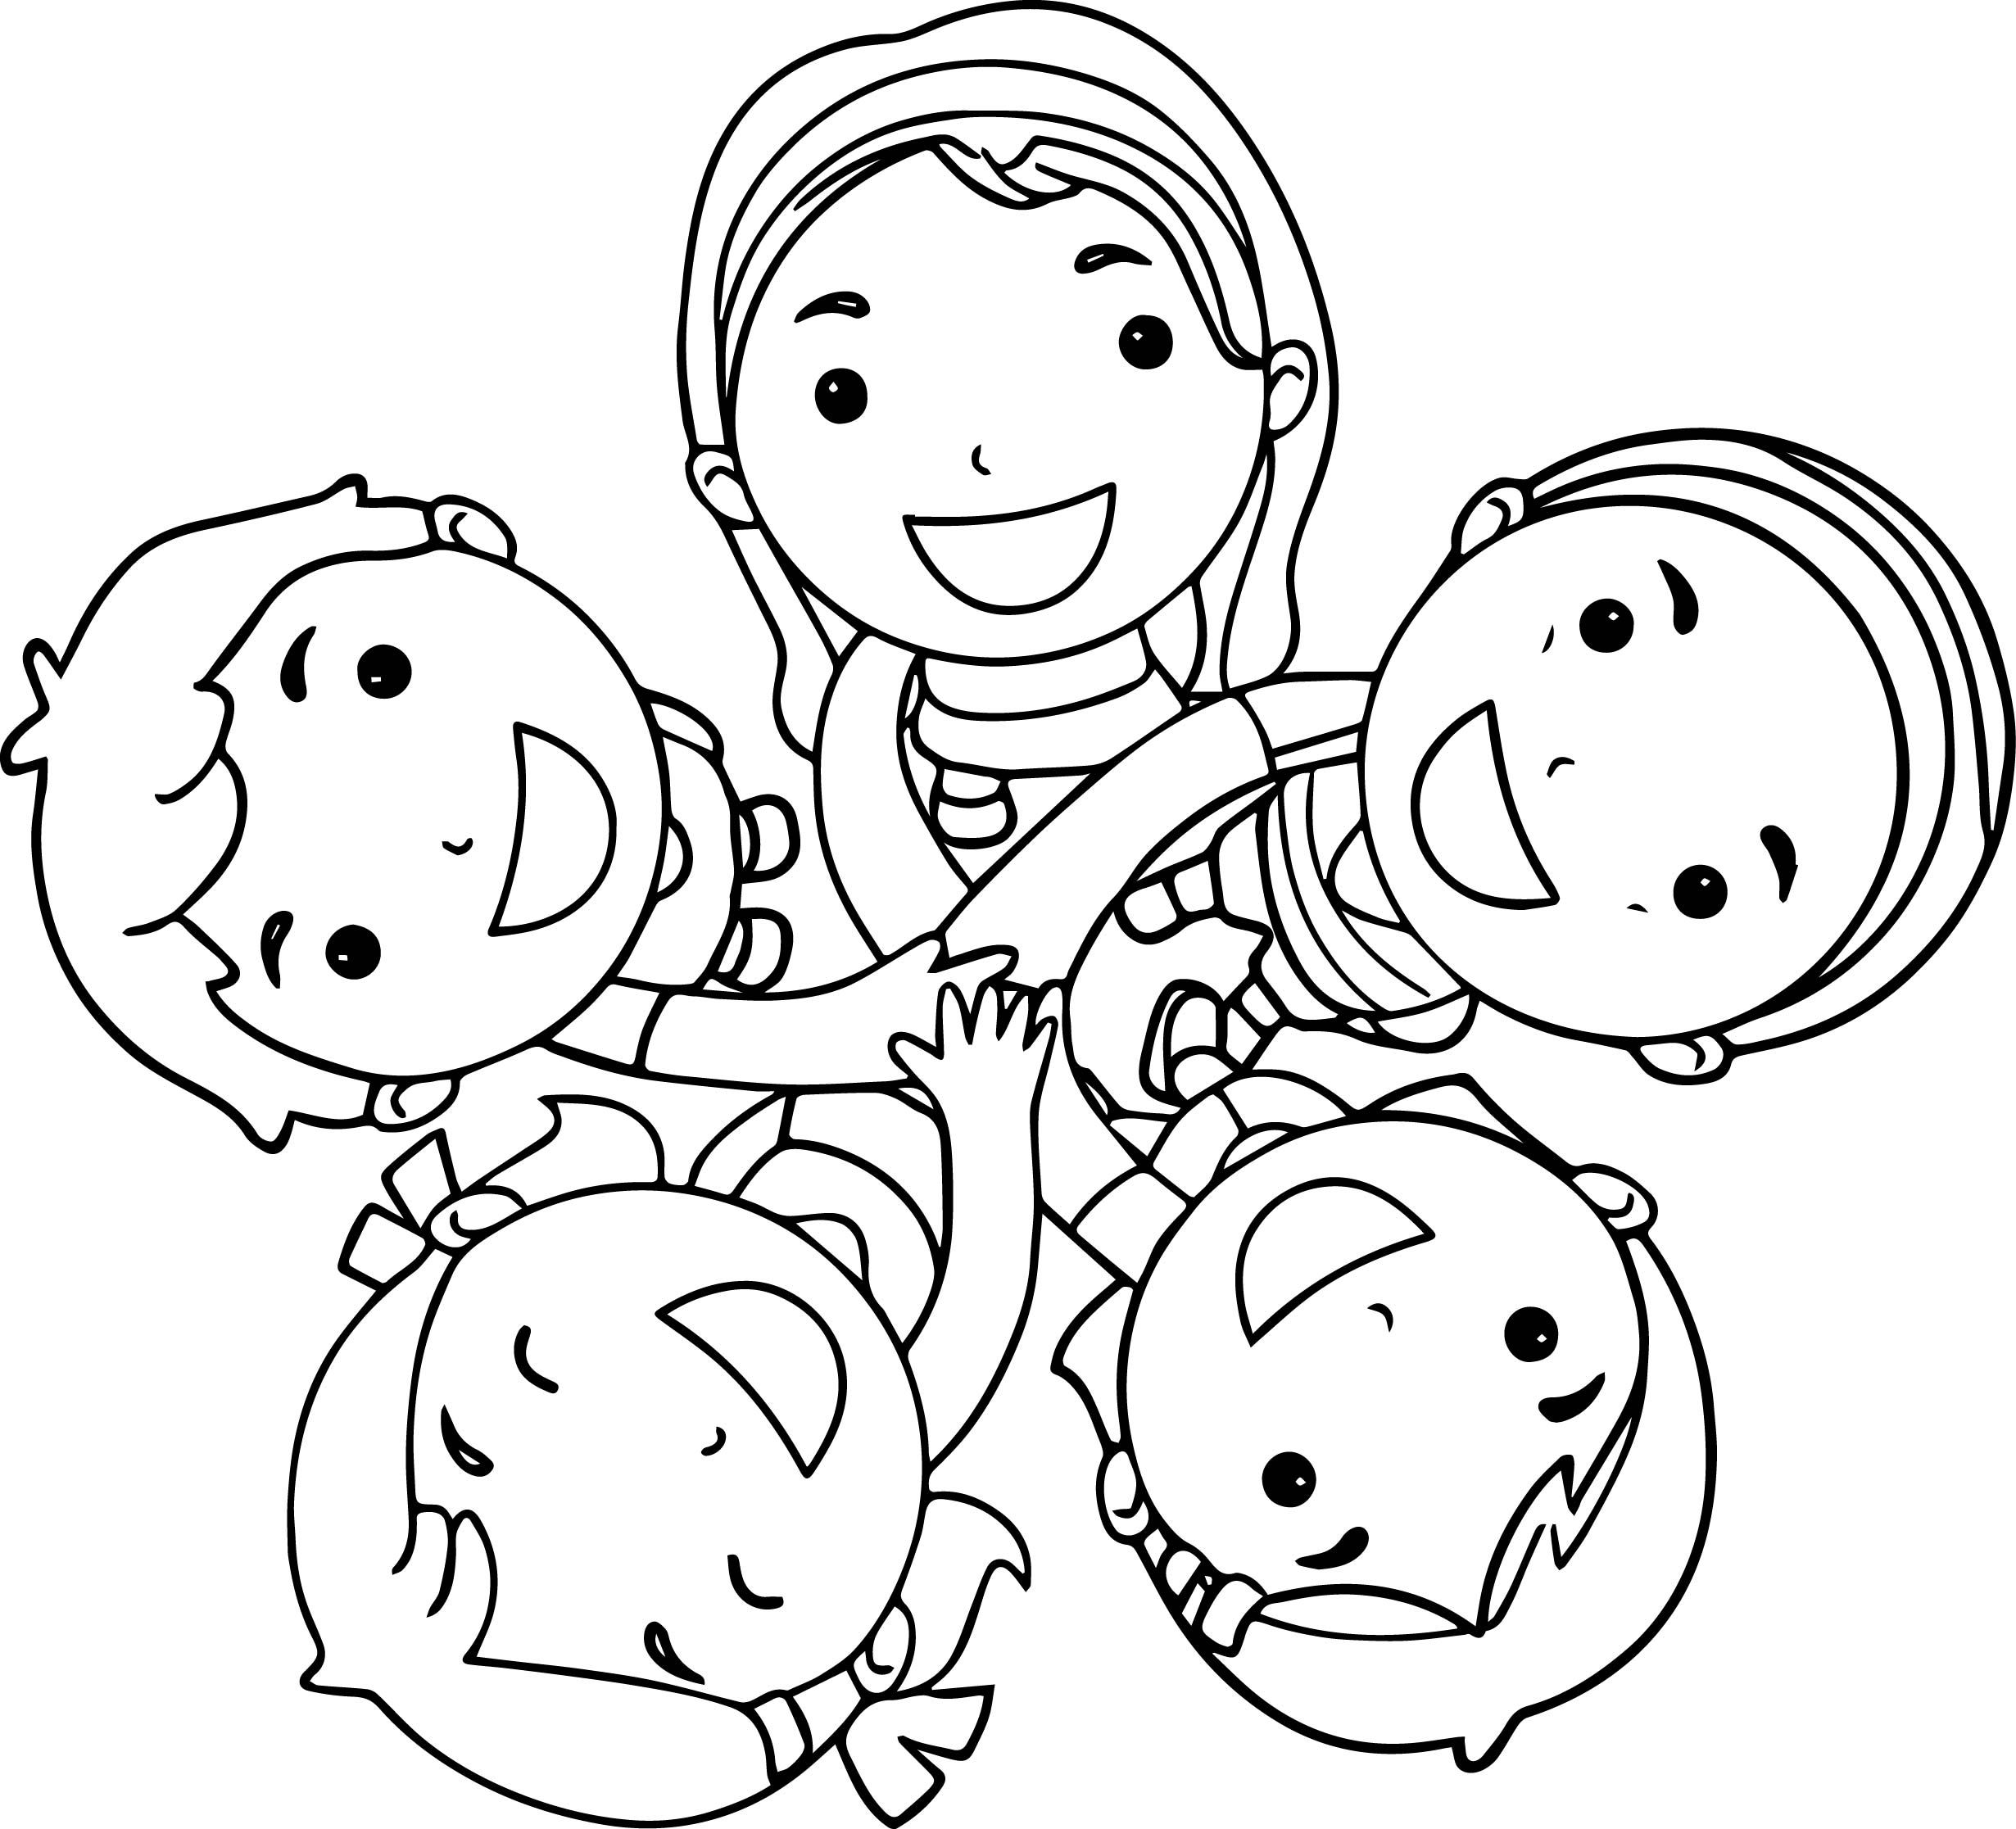 happy friendship day coloring pages cool five best friends coloring page friendship theme day friendship happy pages coloring